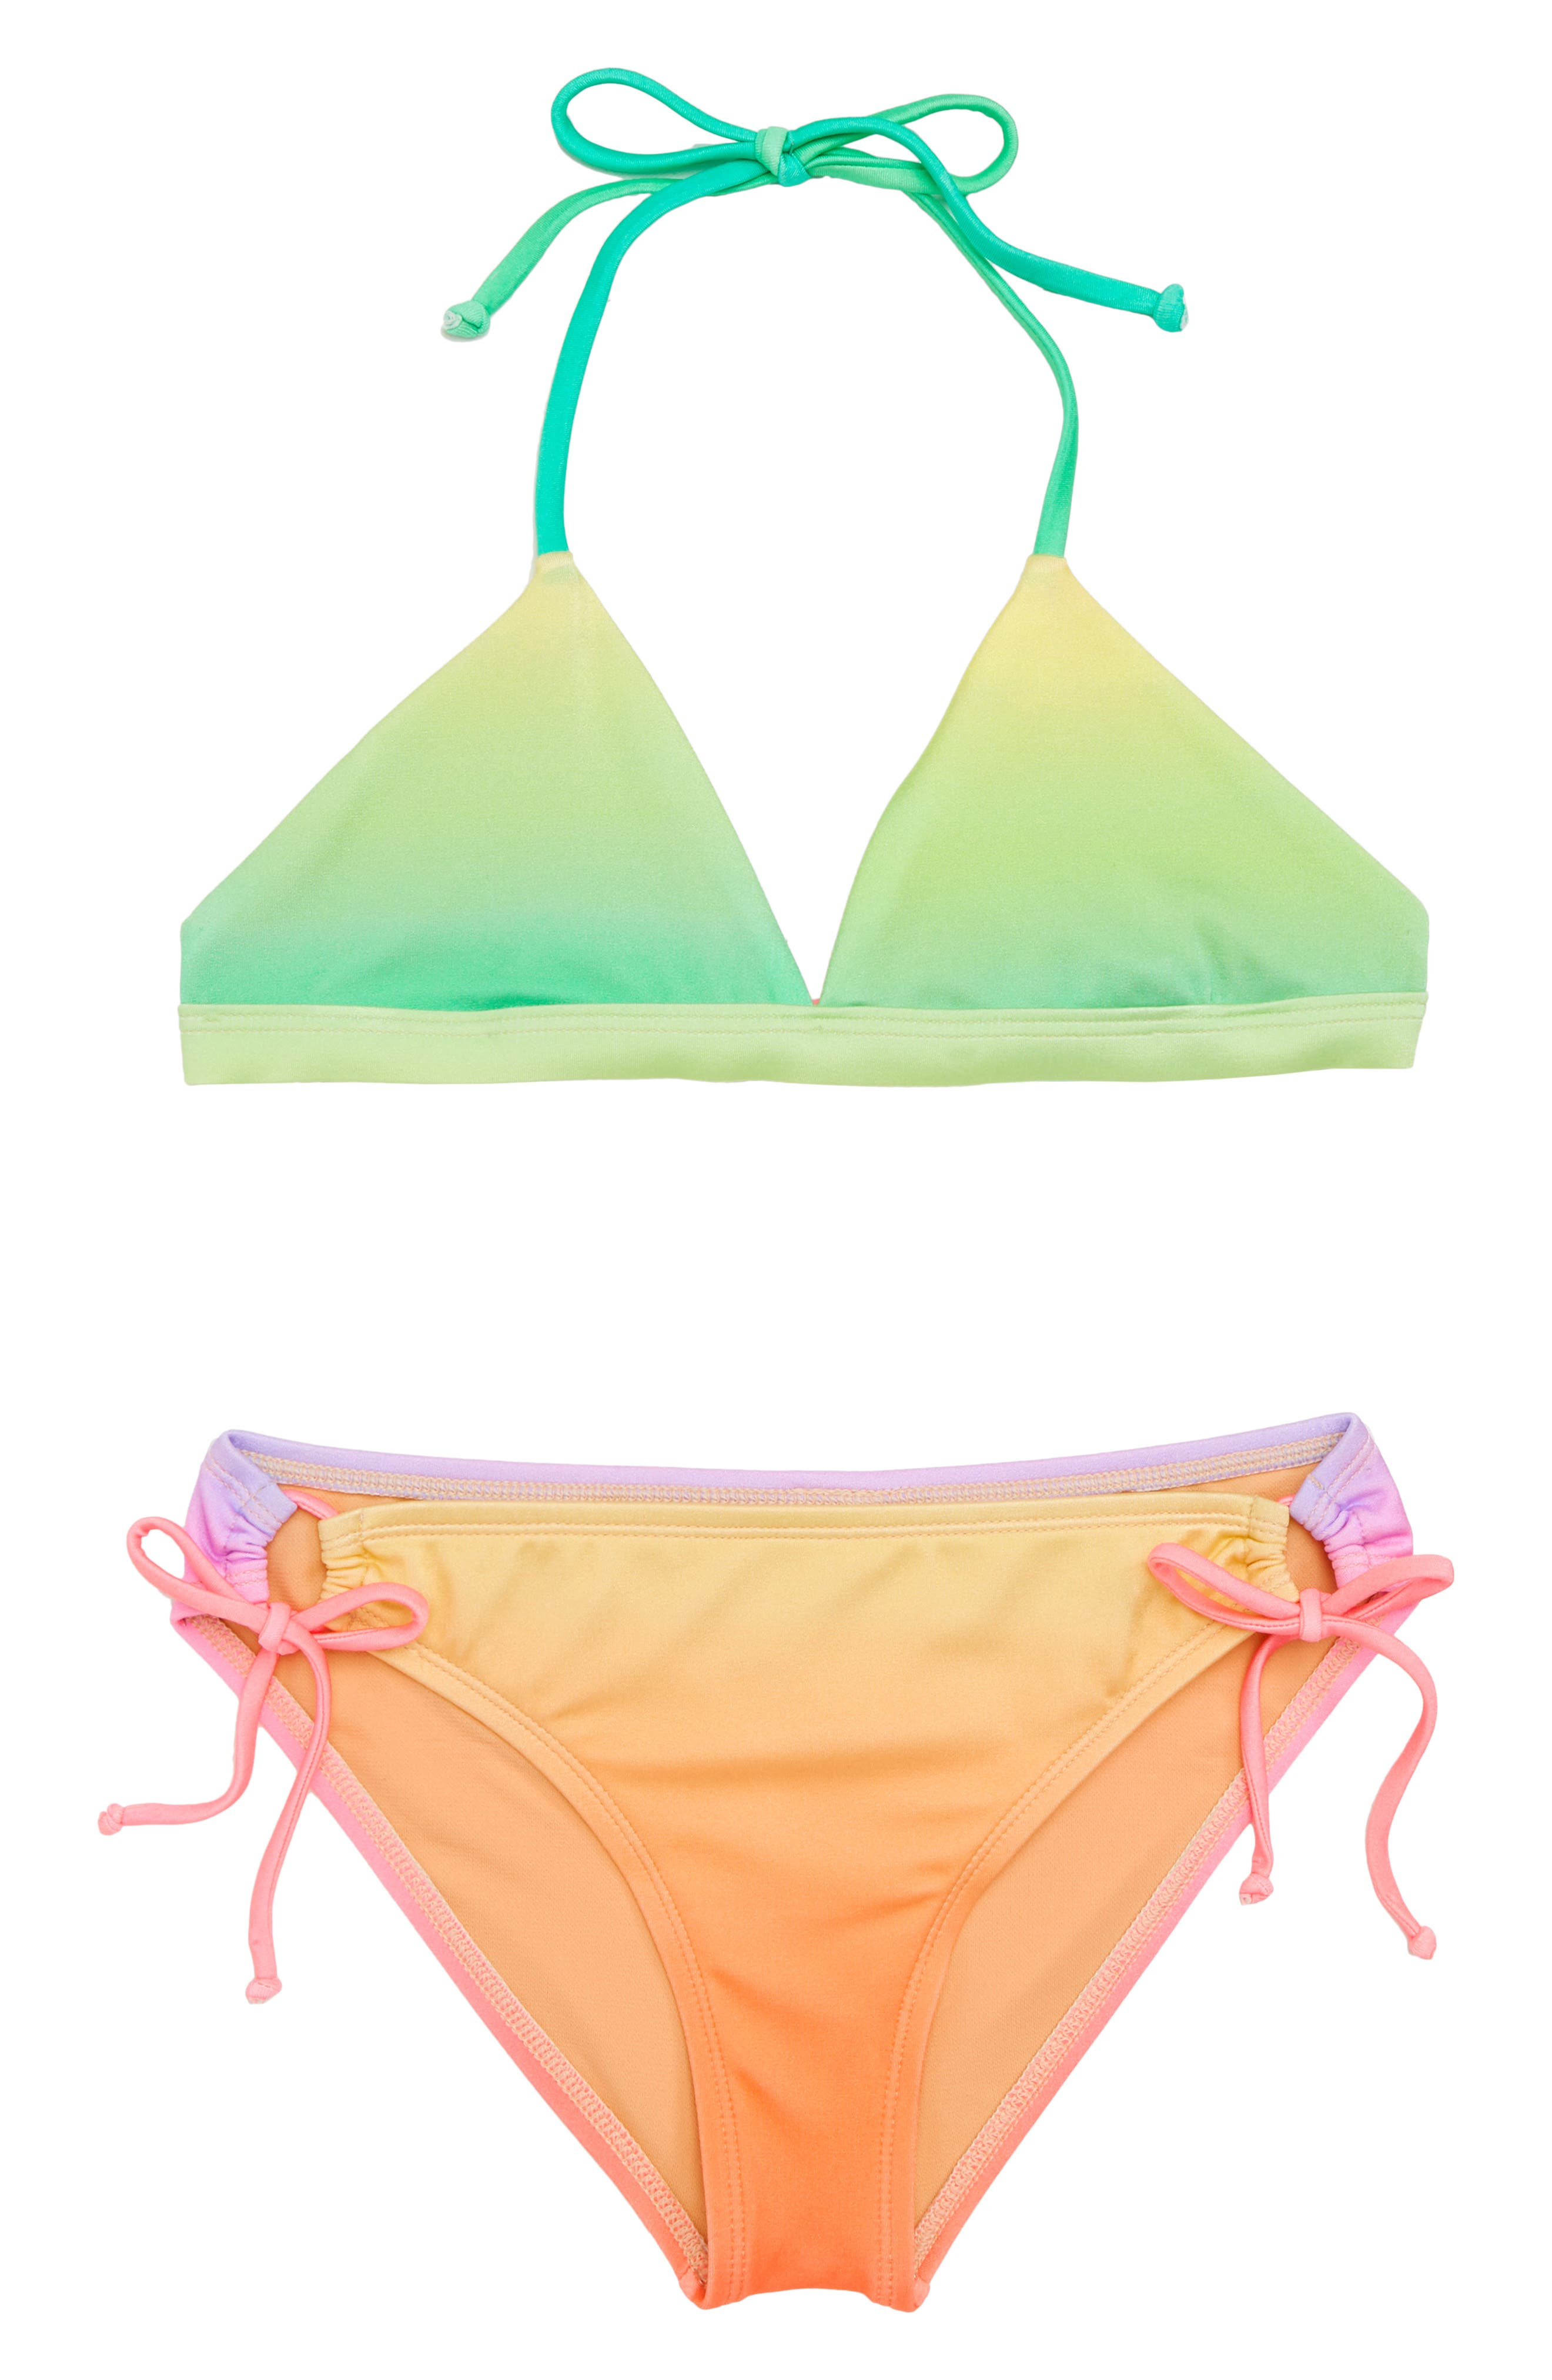 Teen Spirit Triangle Two-Piece Swimsuit,                             Main thumbnail 1, color,                             Blue/ Green